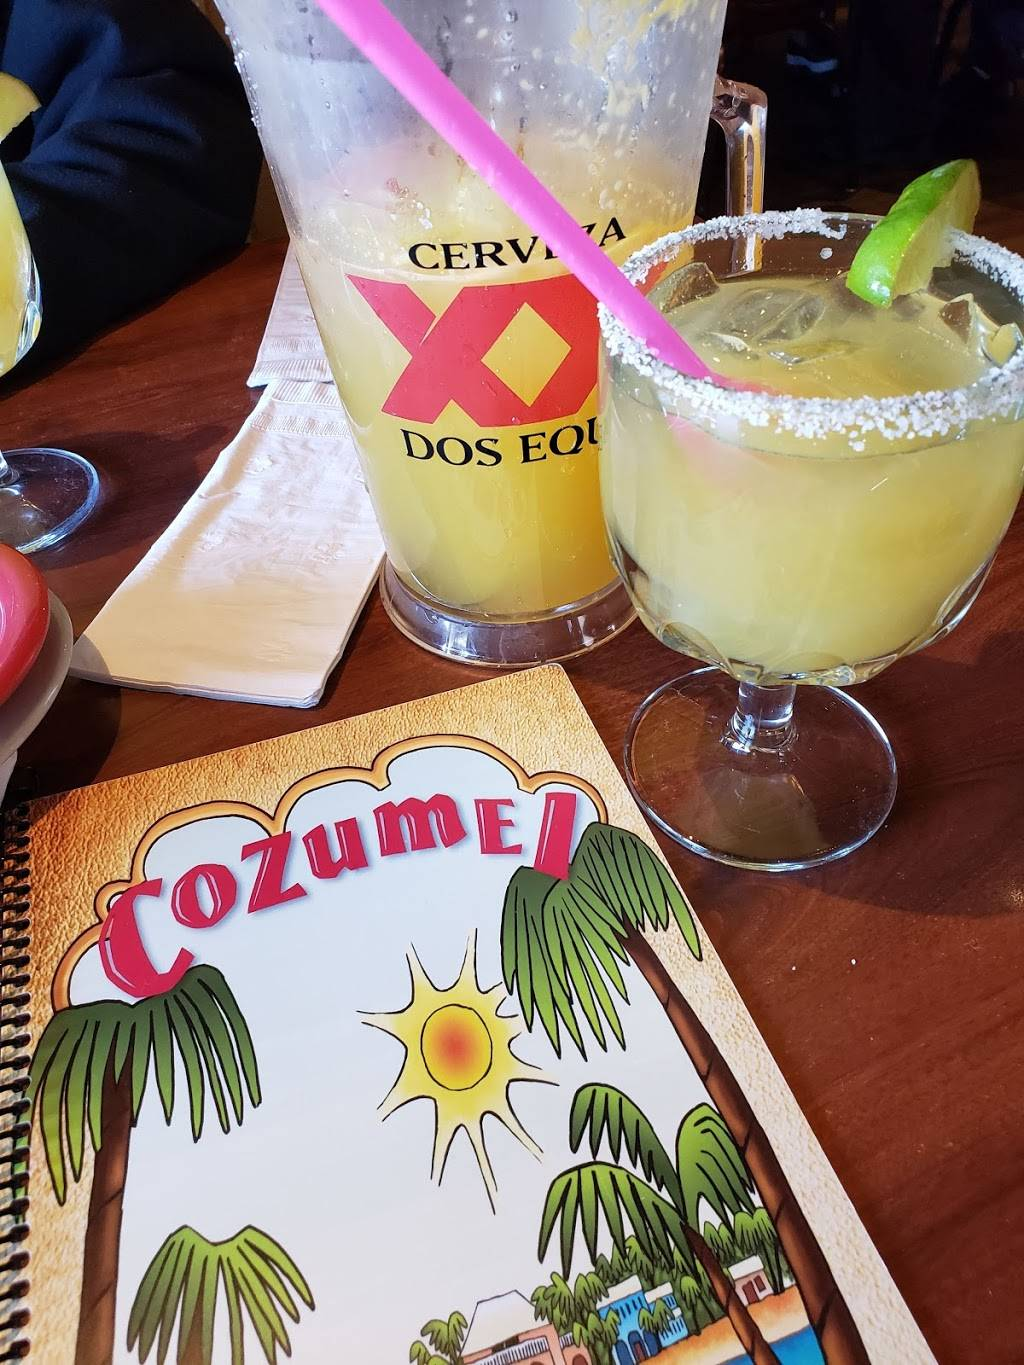 Cozumel Mexican Restaurant | restaurant | 9214 Broadview Rd, Broadview Heights, OH 44147, USA | 4407171080 OR +1 440-717-1080